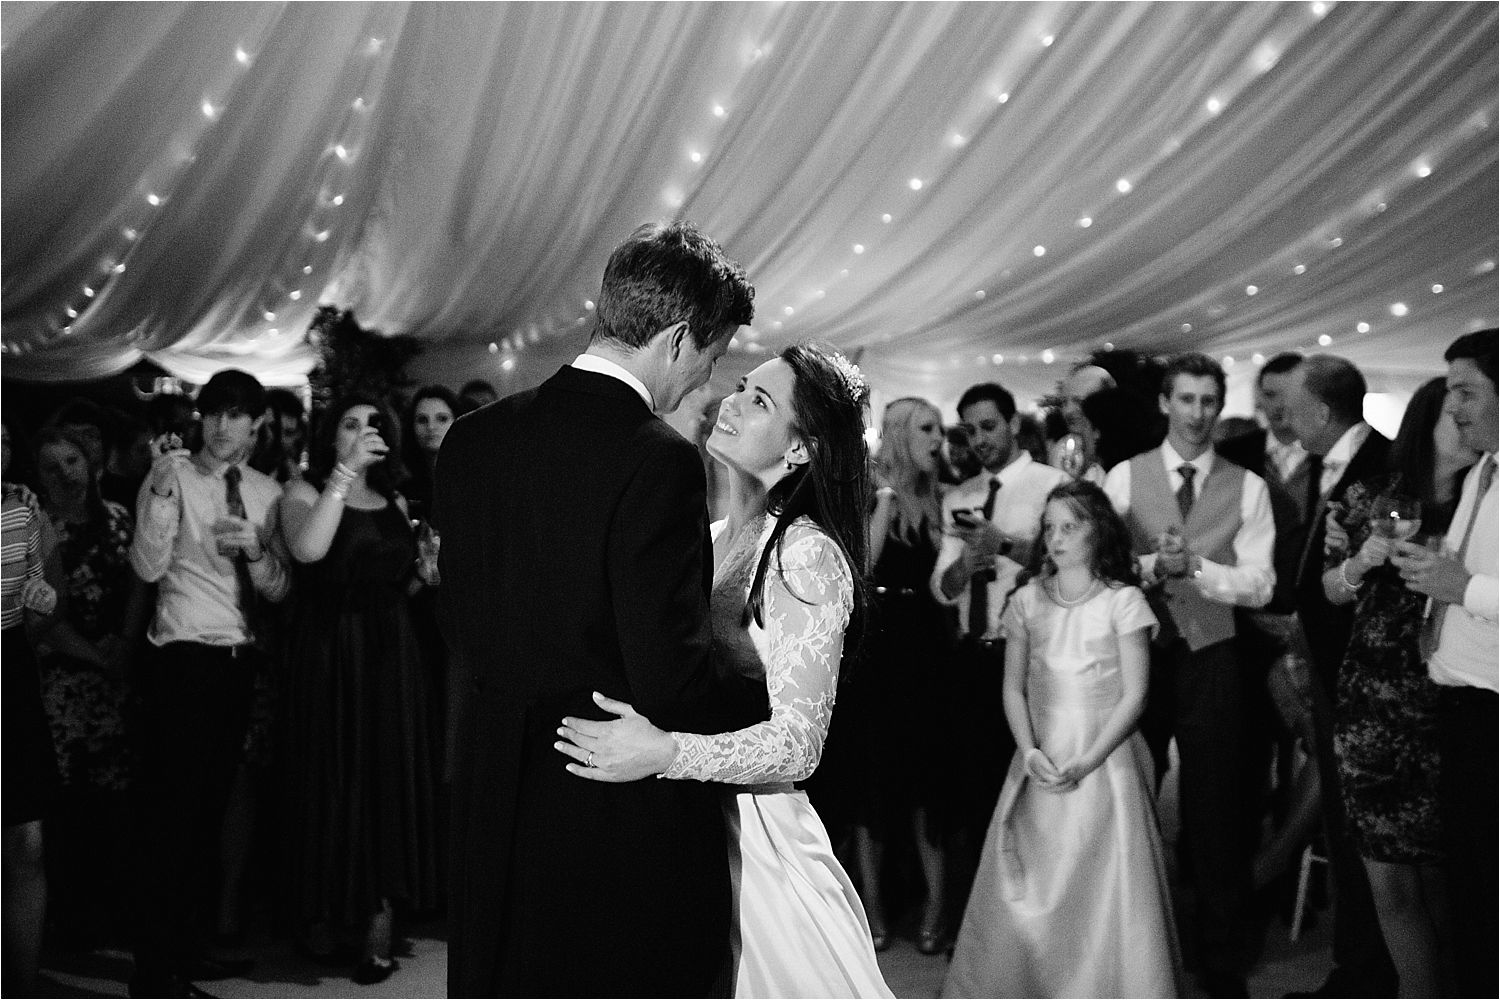 Bride and groom first dance at Cheshire wedding, Hilltop Country House